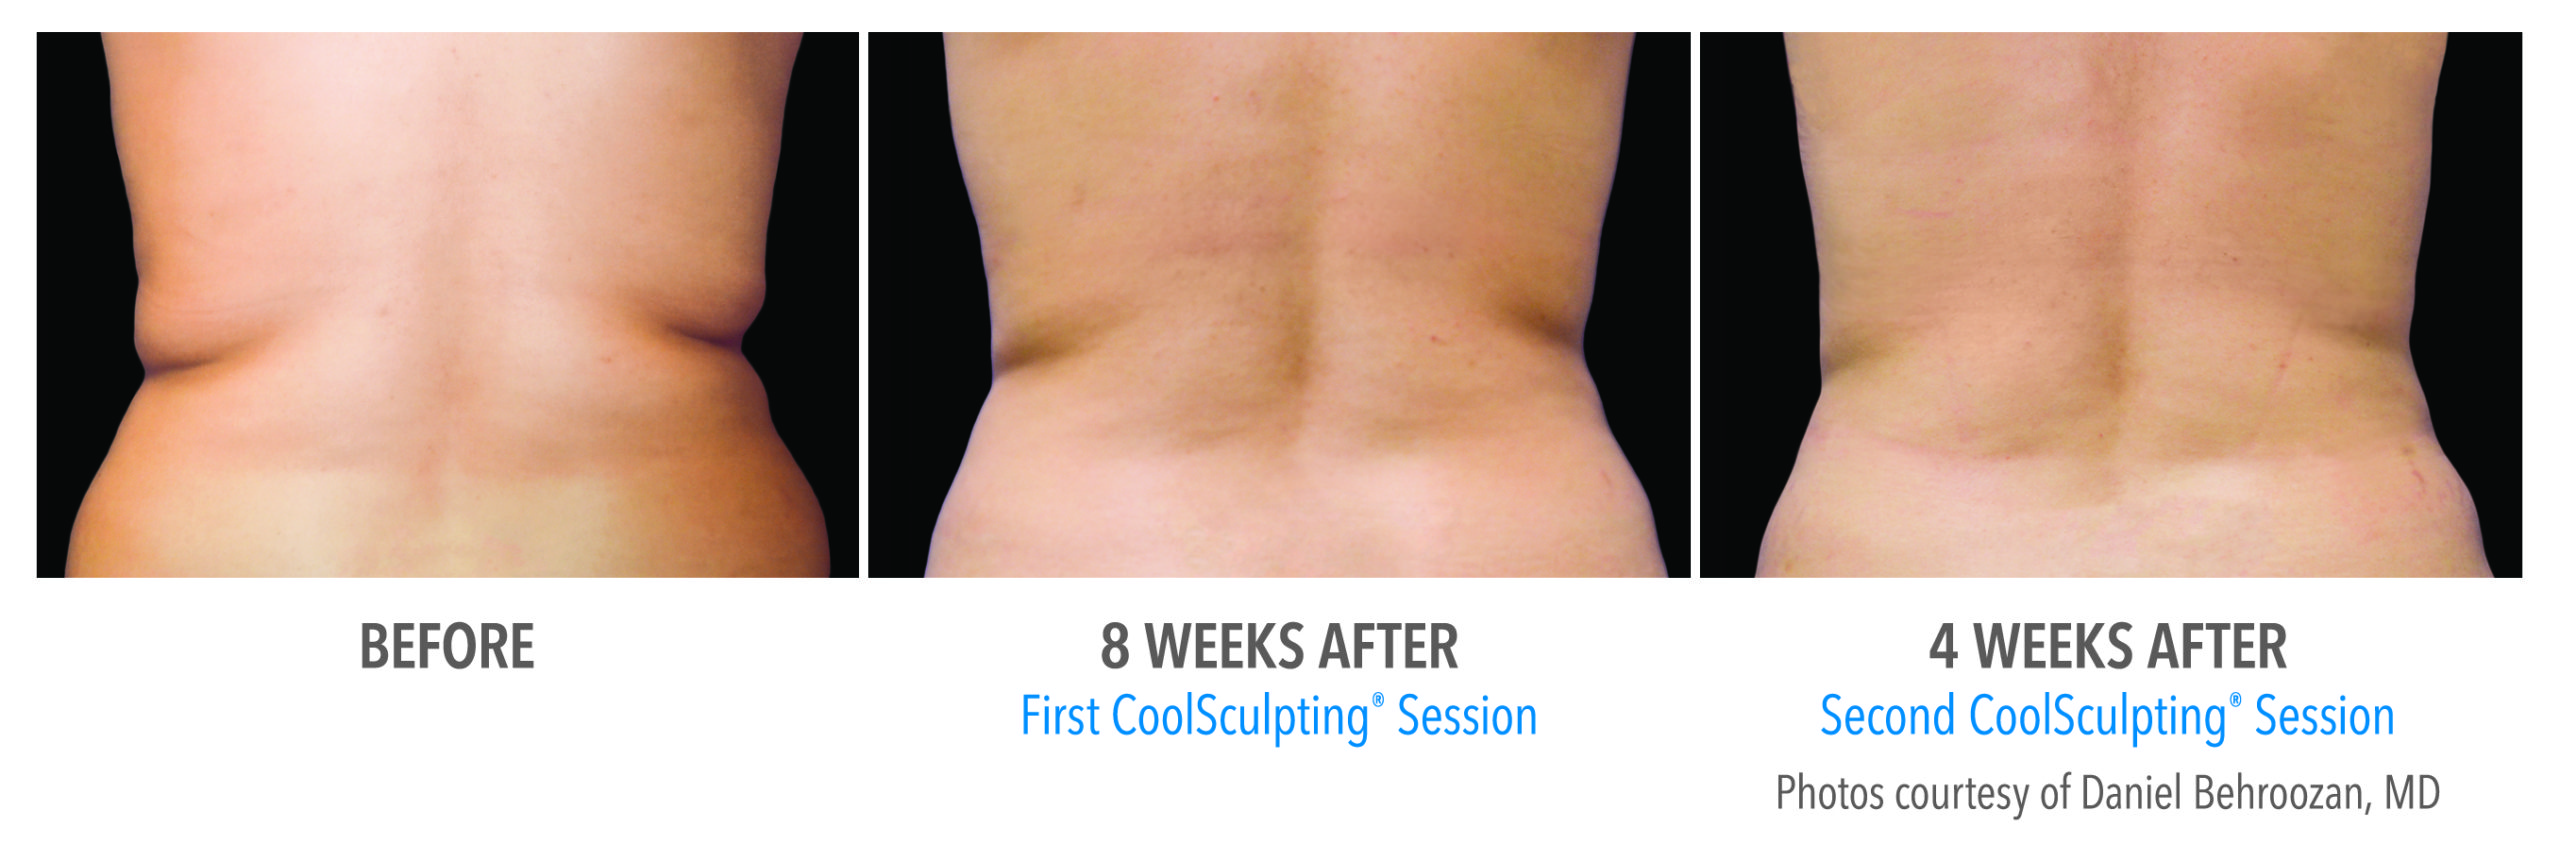 whittier-coolsculpting-back-flank-lower flank-coolsculpting